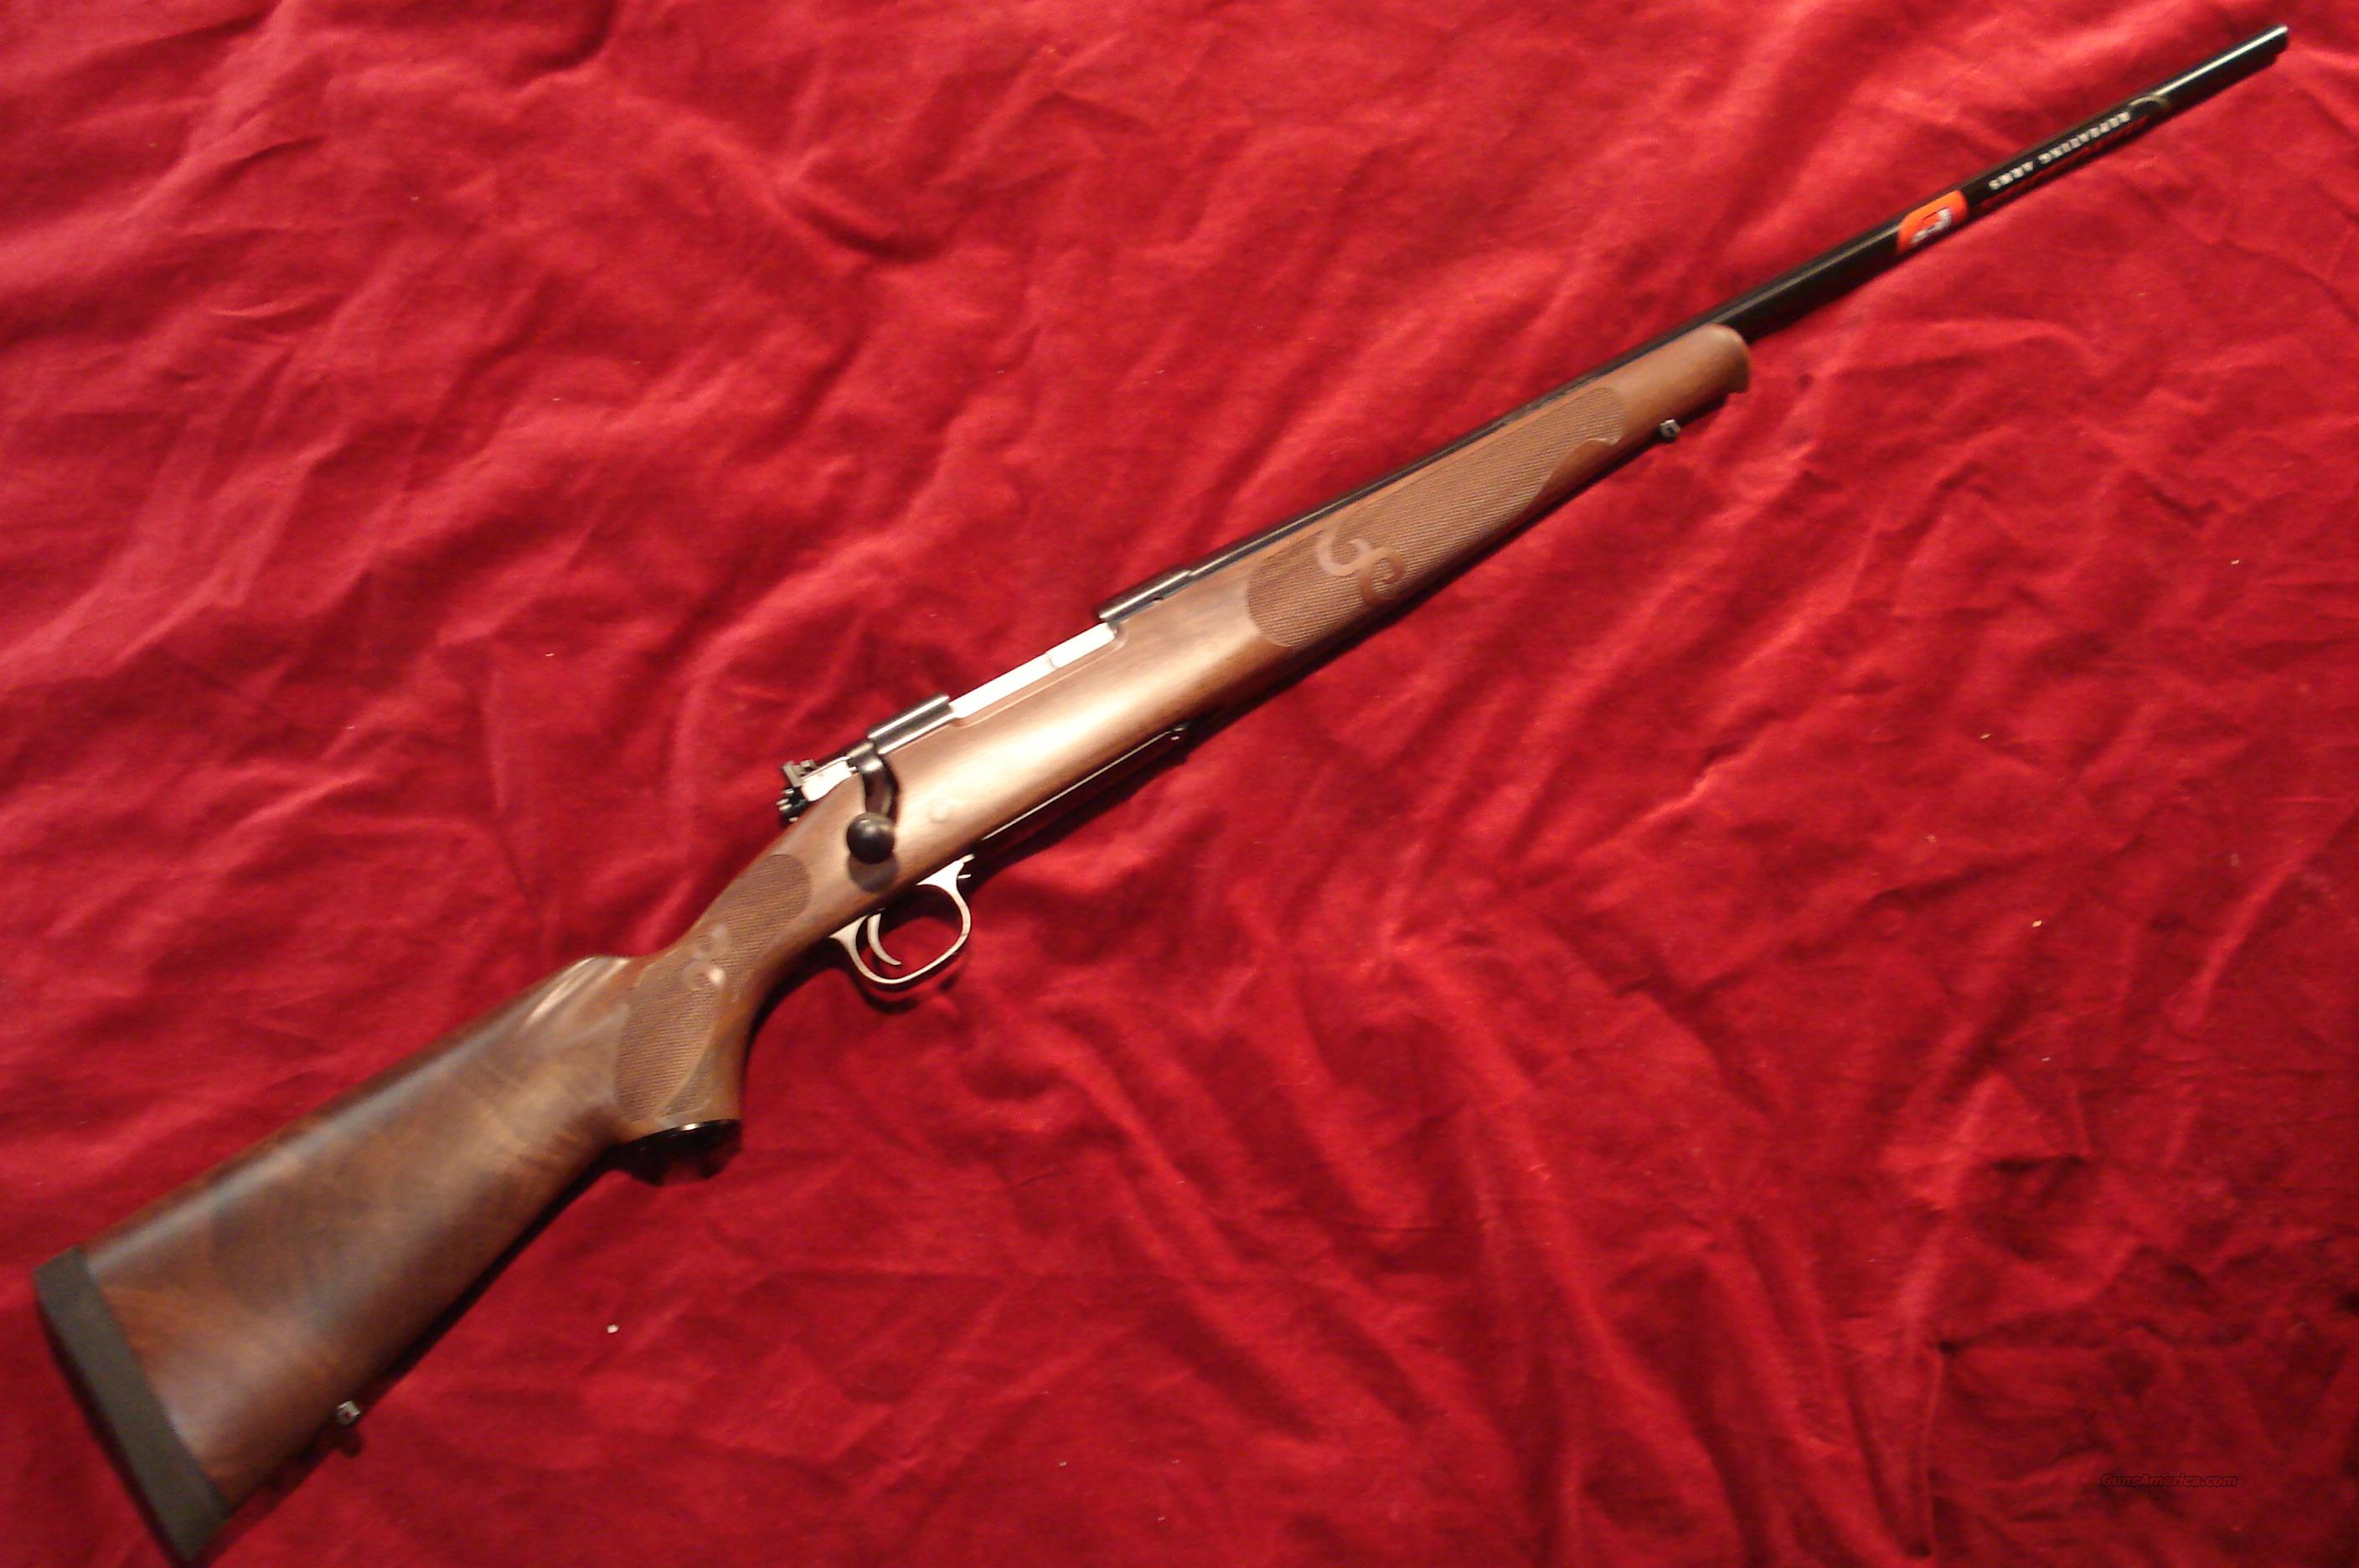 WINCHESTER 70 FEATHERWEIGHT DELUXE .270 WSM CAL. NEW   Guns > Rifles > Winchester Rifles - Modern Bolt/Auto/Single > Model 70 > Post-64